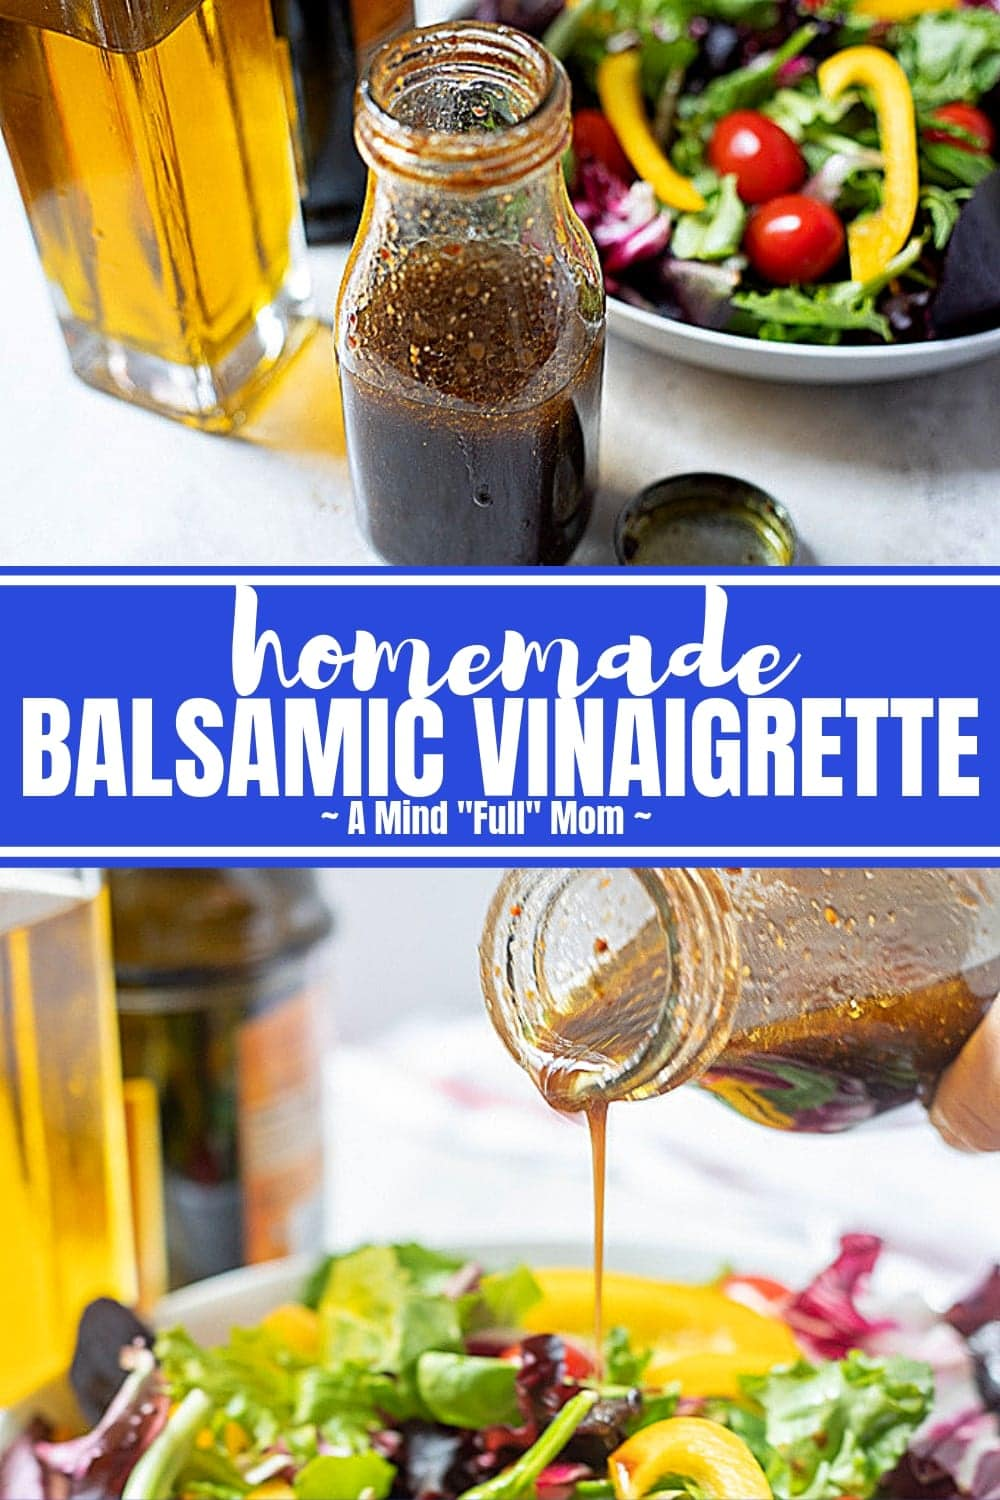 This Balsamic Vinaigrette is the most versatile salad dressing recipe. From topping tossed salads, to marinating meet, to using to dip fresh bread, this Balsamic Dressing will be your go to salad dressing.